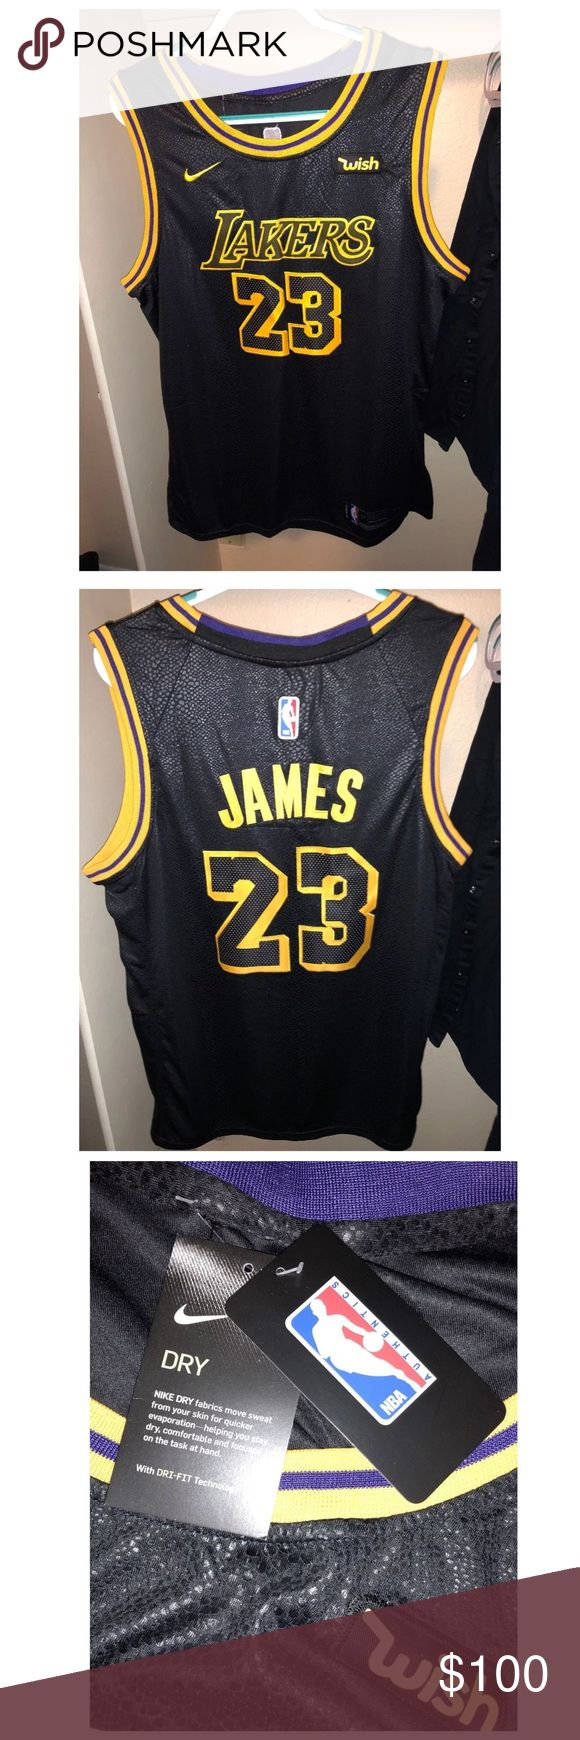 2cf6afbeeed0 NWT Lebron James Lakers Jersey Size LARGE SALE SALE SA